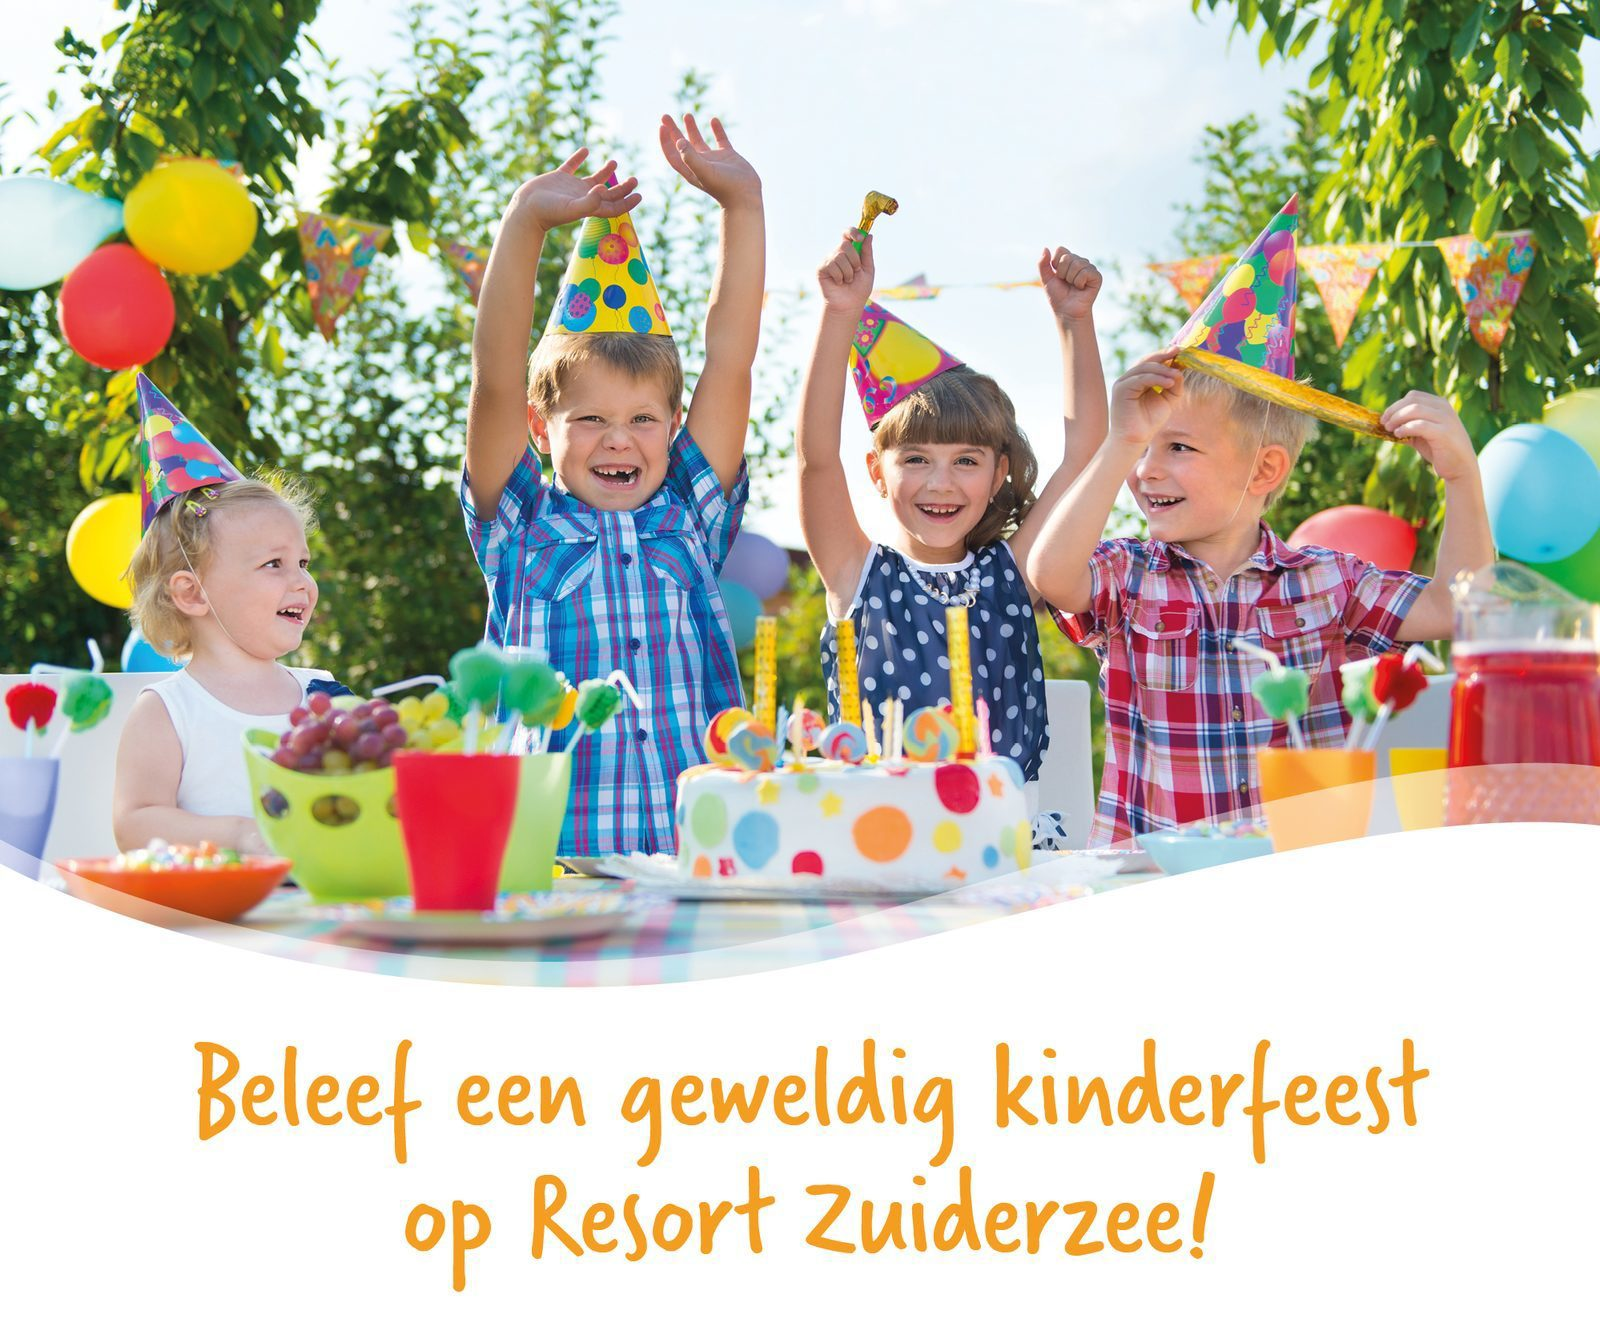 Children's party at Resort Zuiderzee